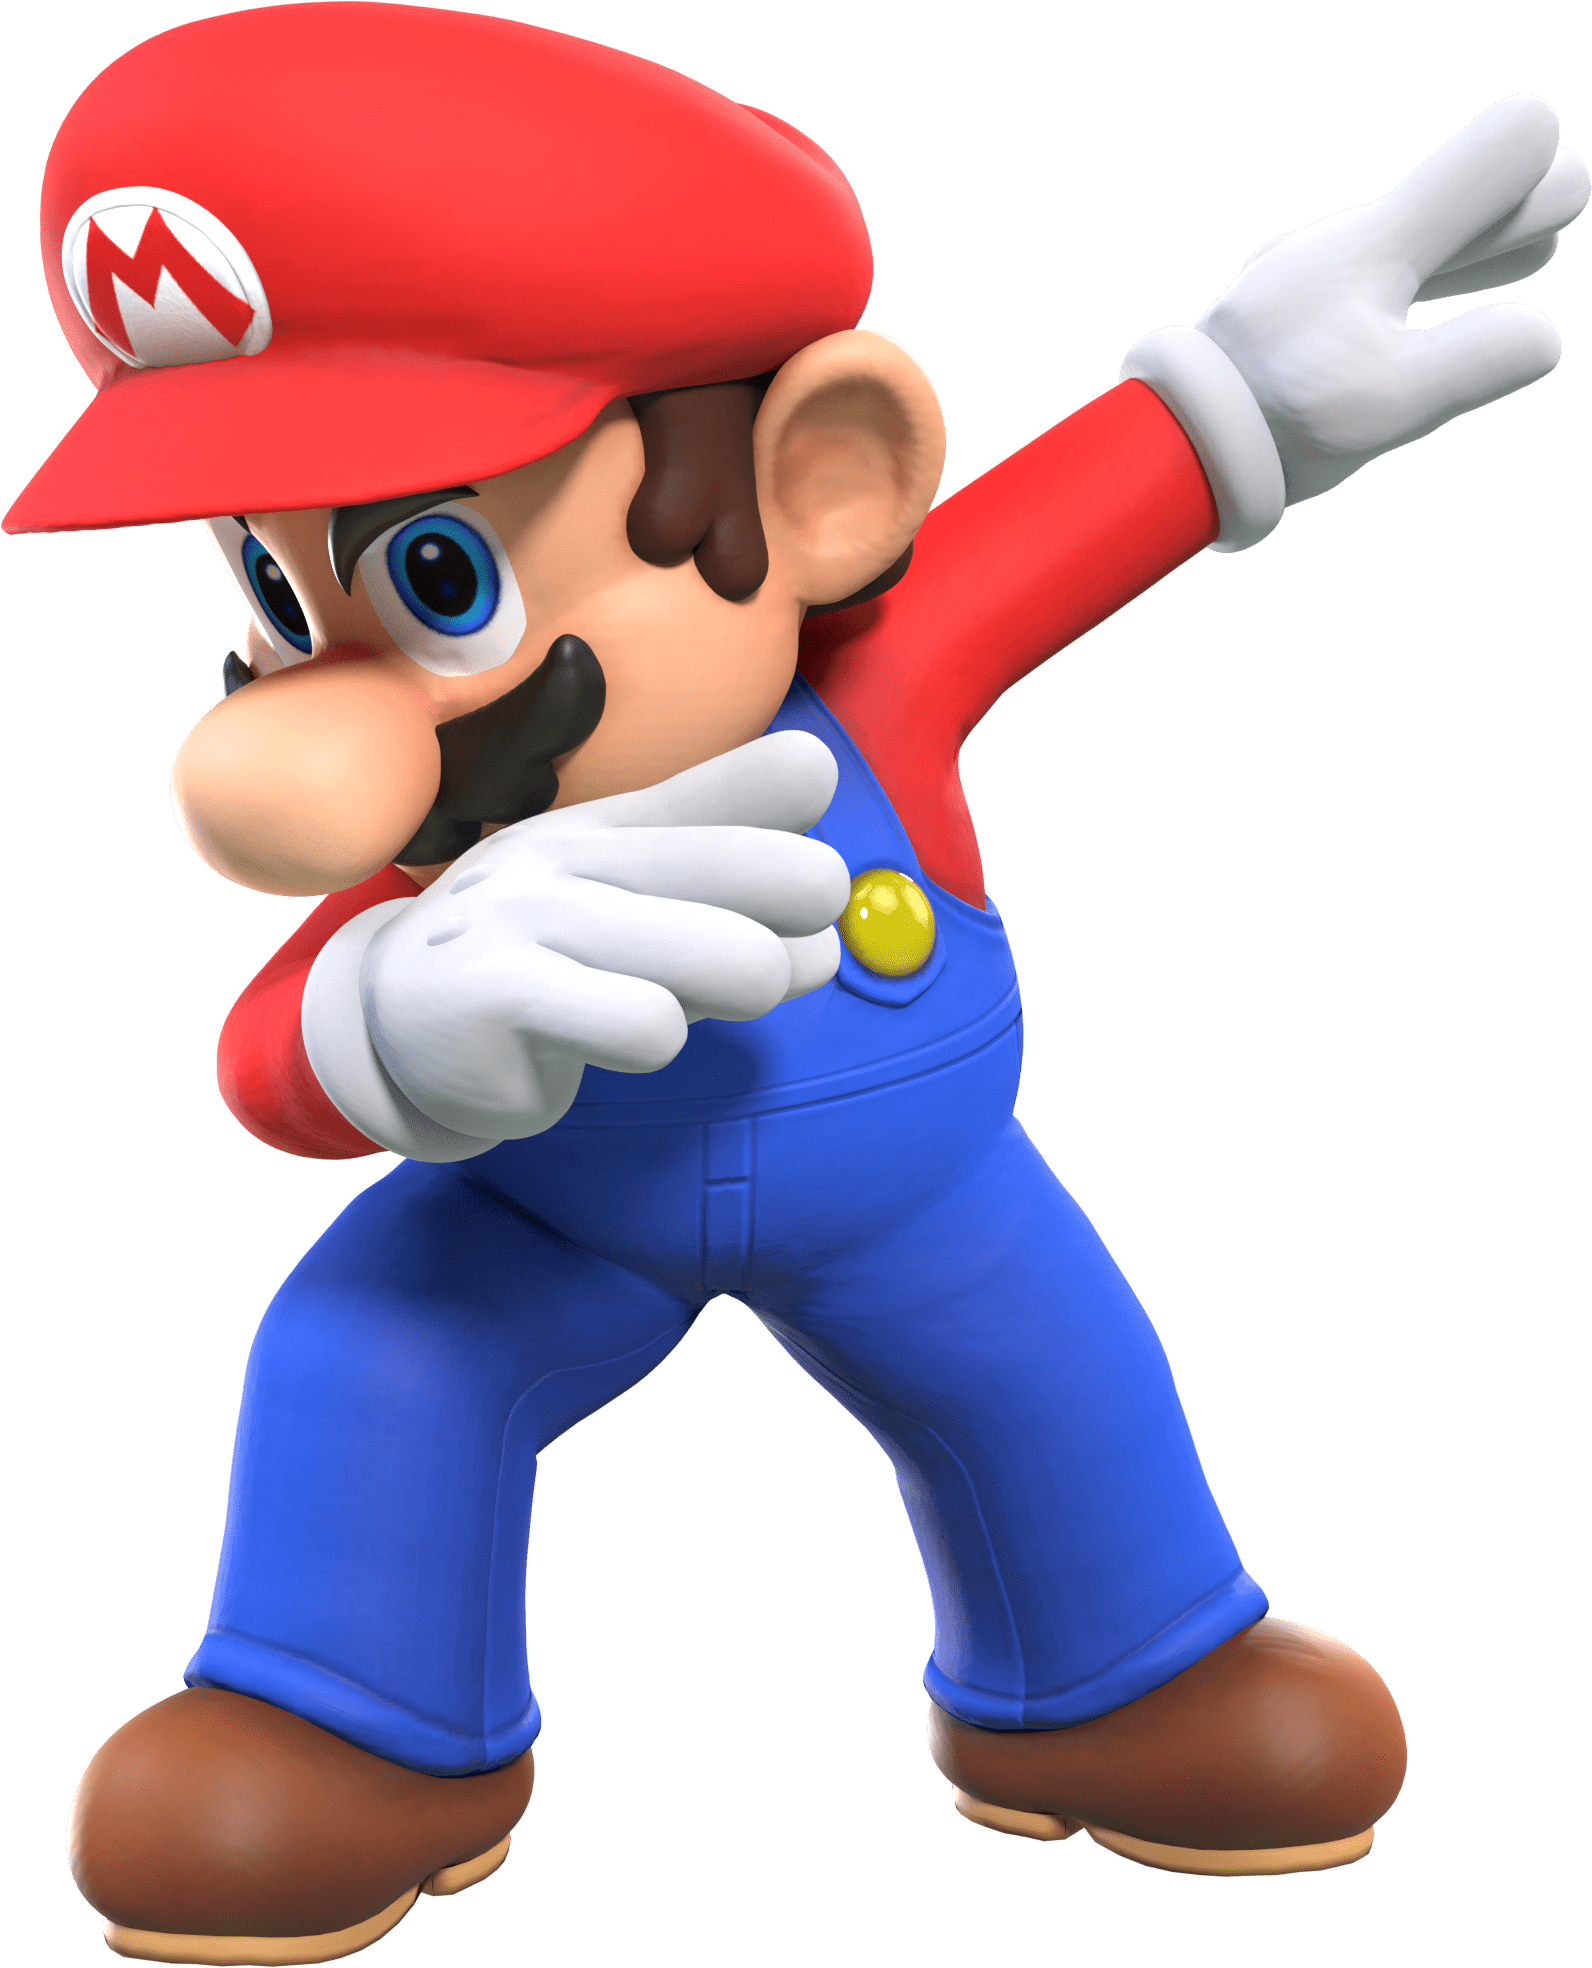 The official home for Mario - Home